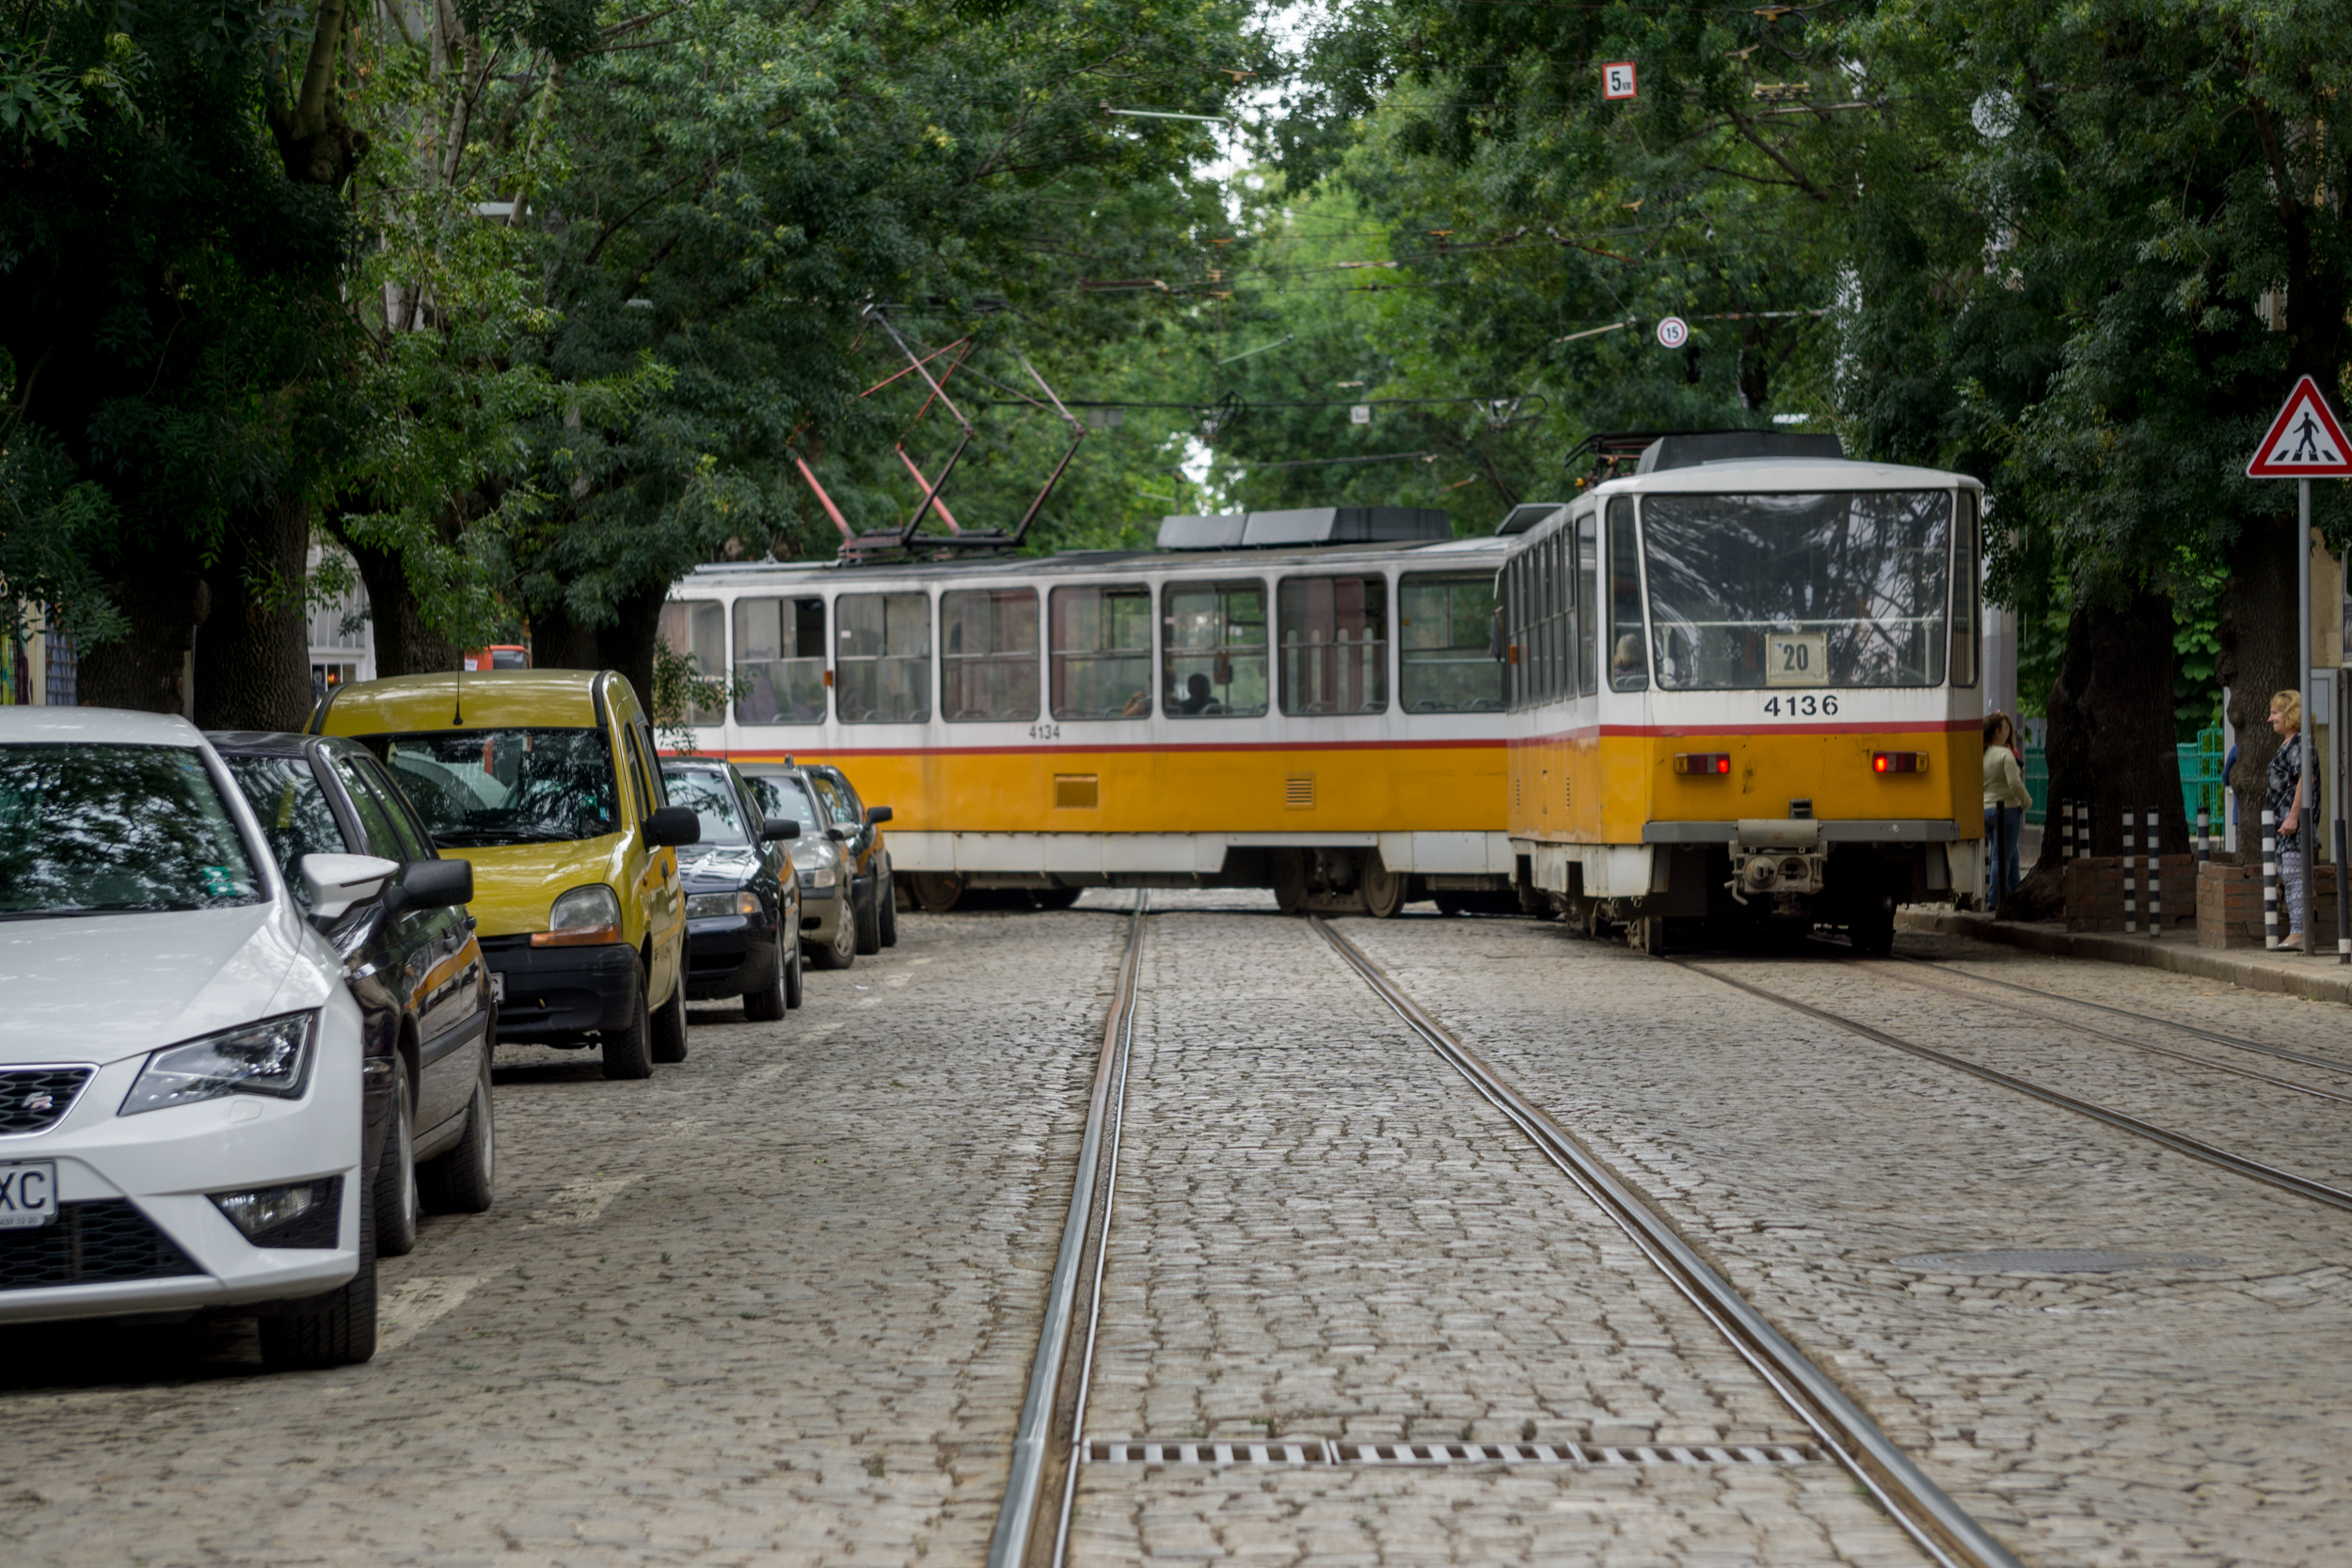 Bulgaria: Tram in Sofia